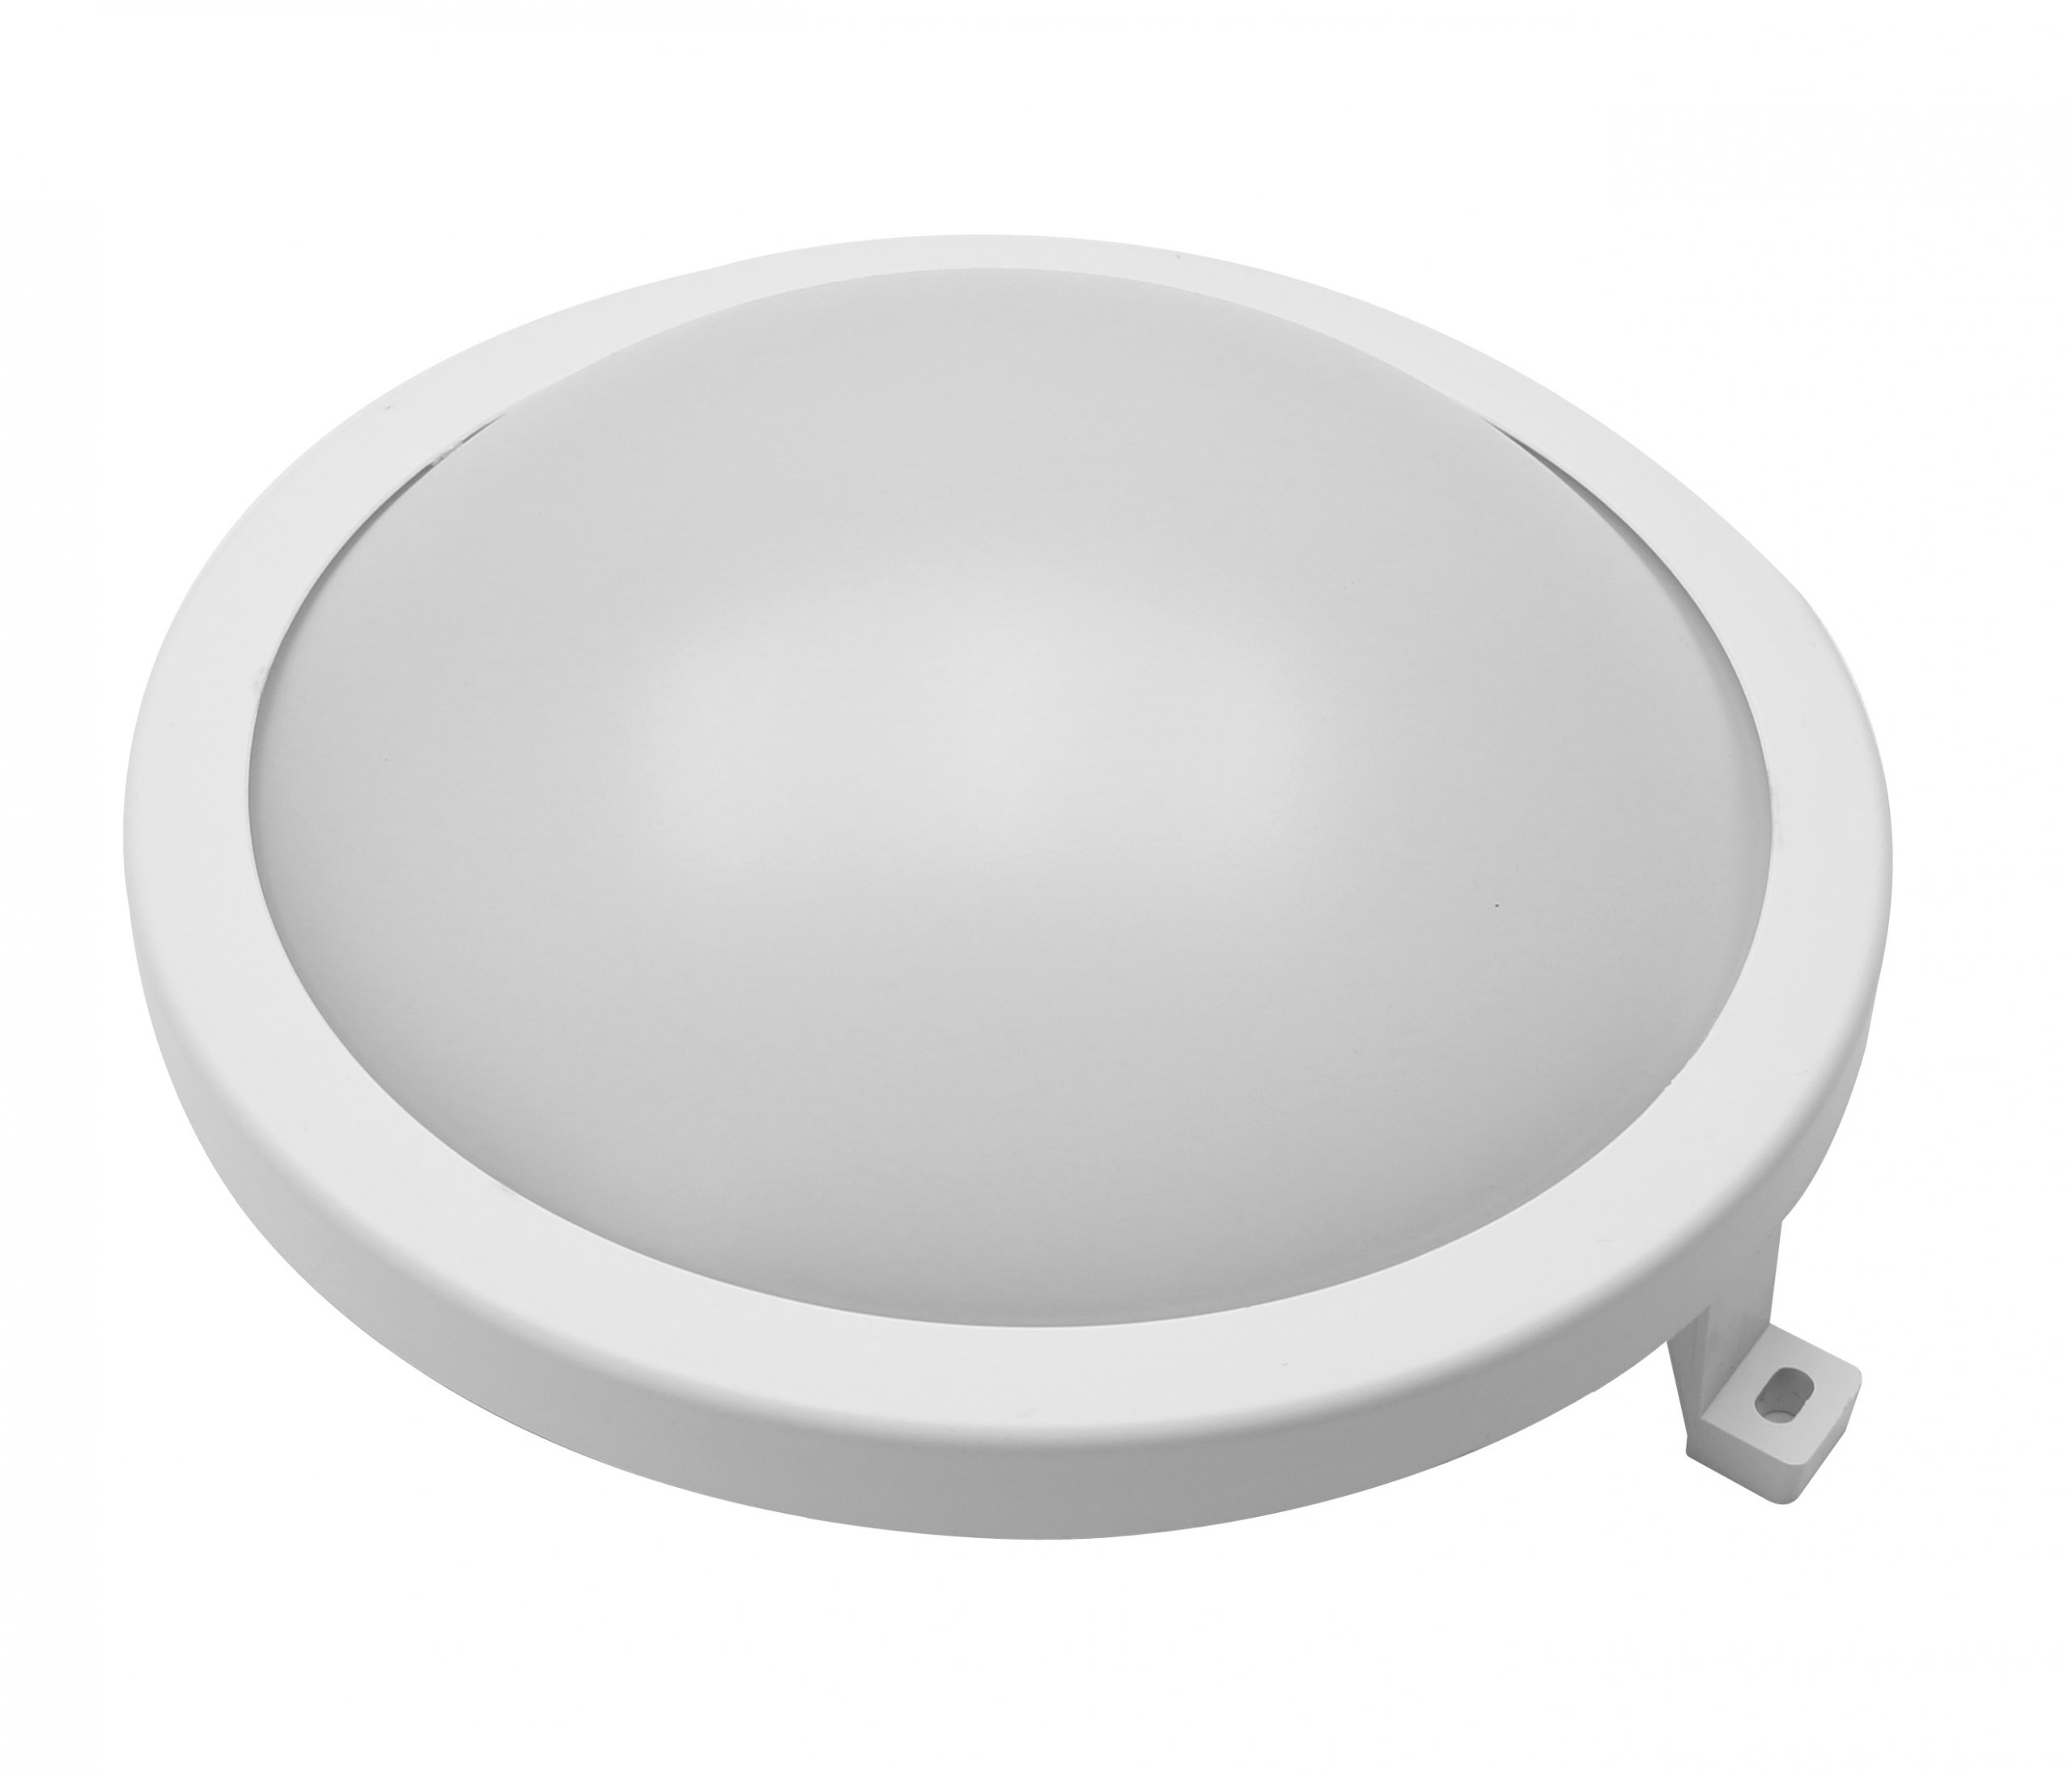 ip65 LED wall light fixture